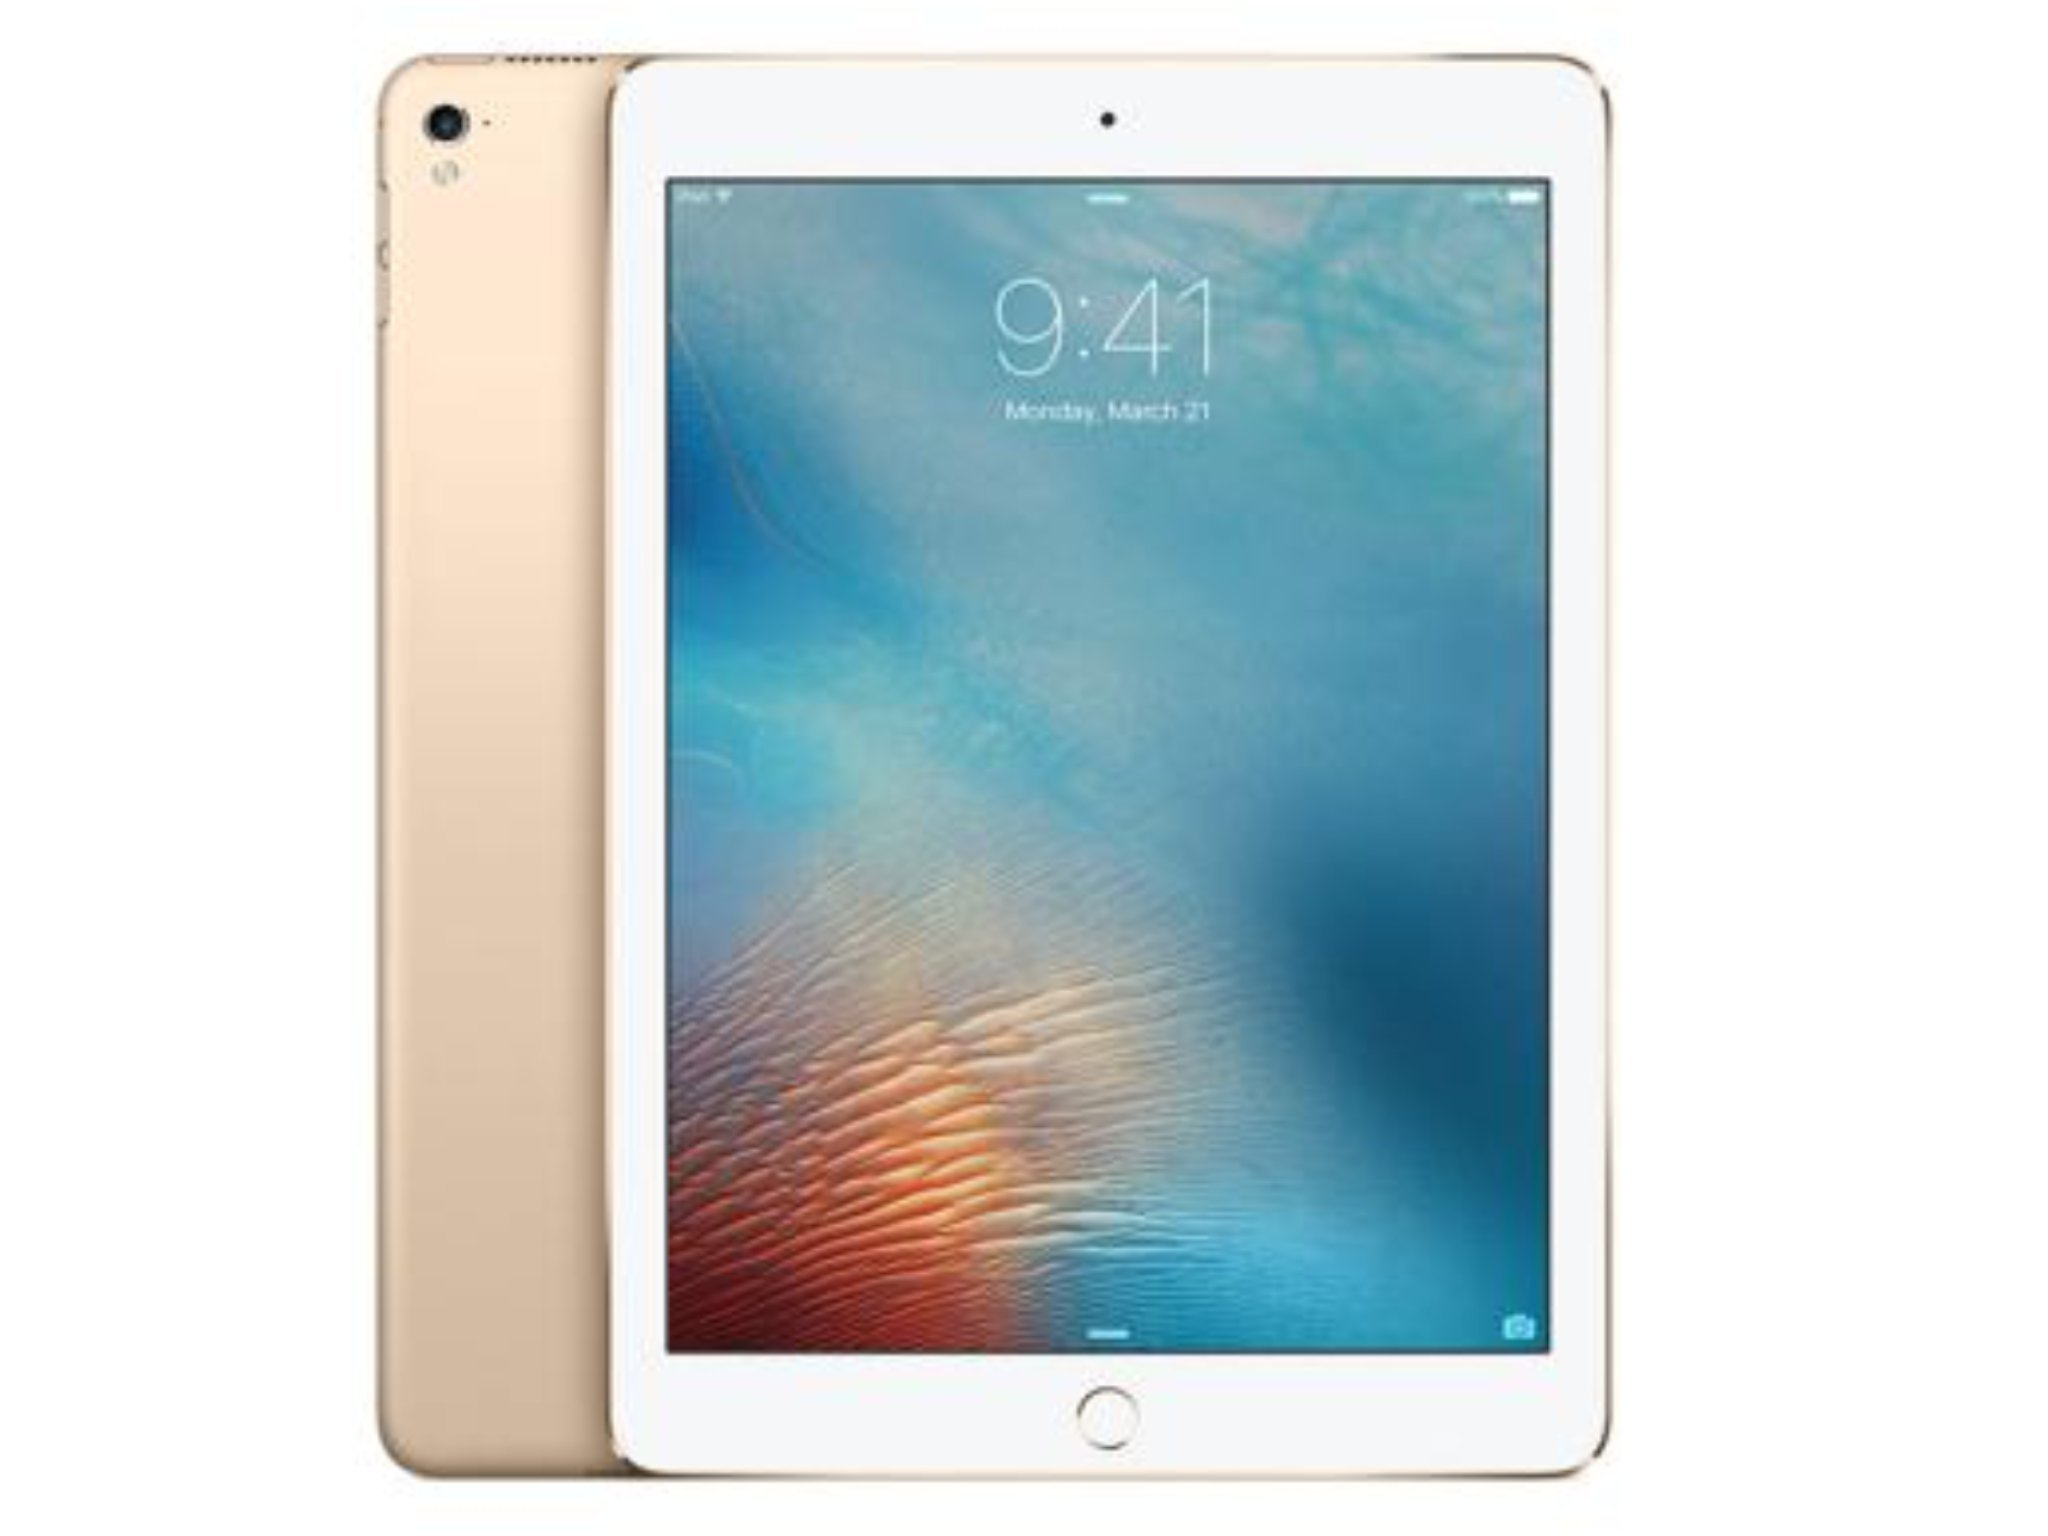 Apple iPad 5th Gen 2017 9.7'' 32GB Gold (Unlocked) by Apple